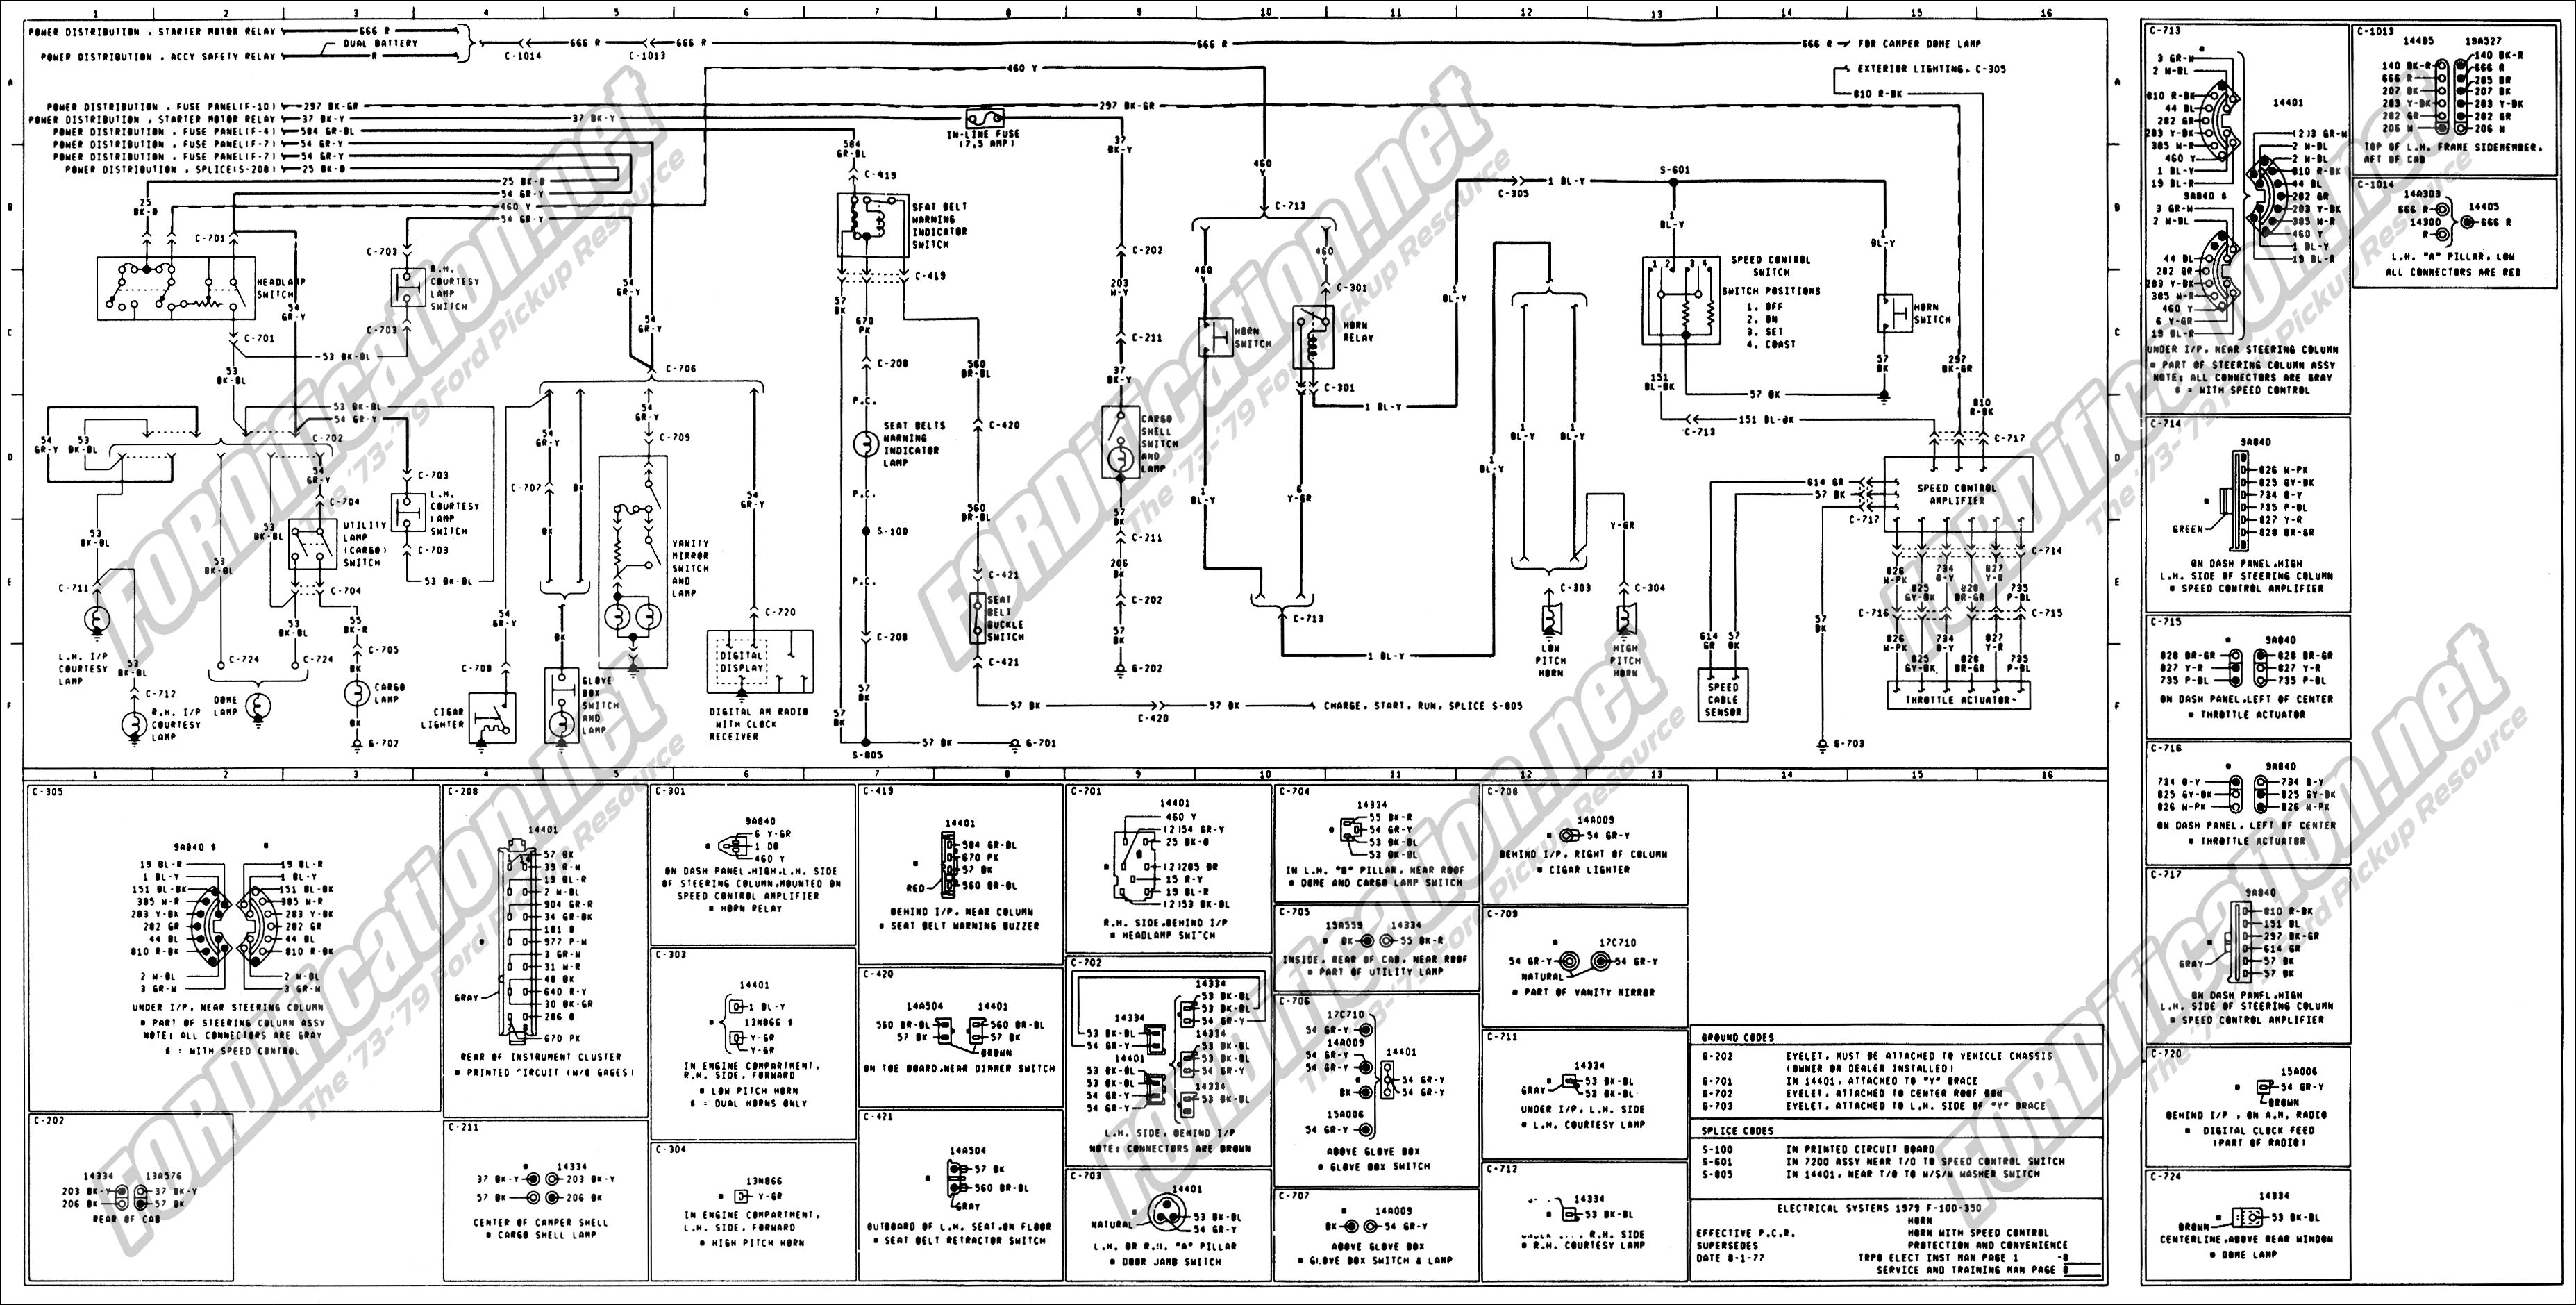 wiring_79master_8of9 1976 ford f150 wiring diagram 1979 ford truck wiring harness wiring harness for 2006 ford f150 at suagrazia.org